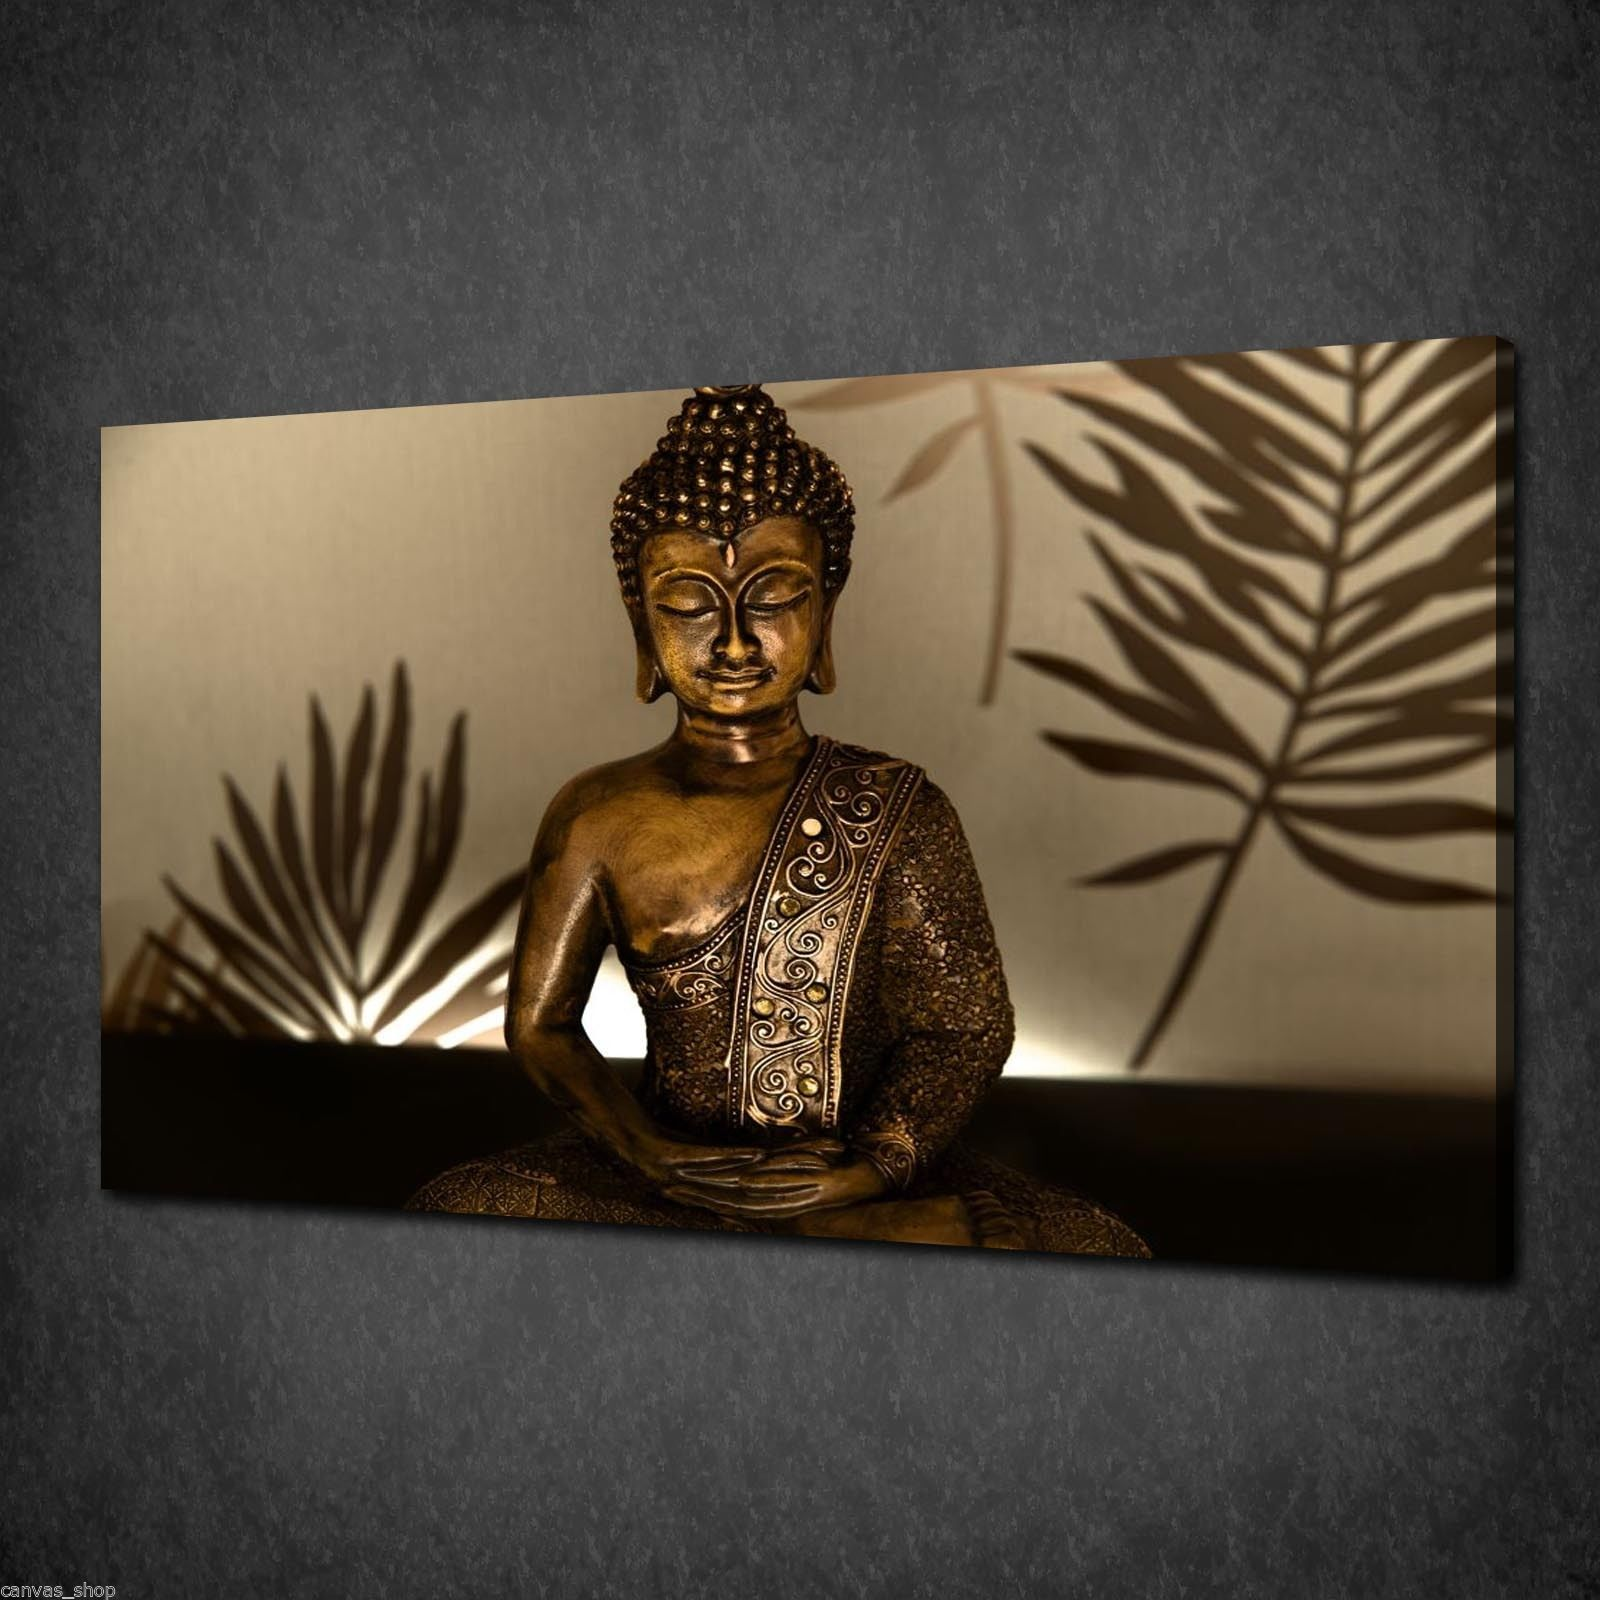 Canvas print pictures high quality handmade free next for Buddha decorations for the home uk